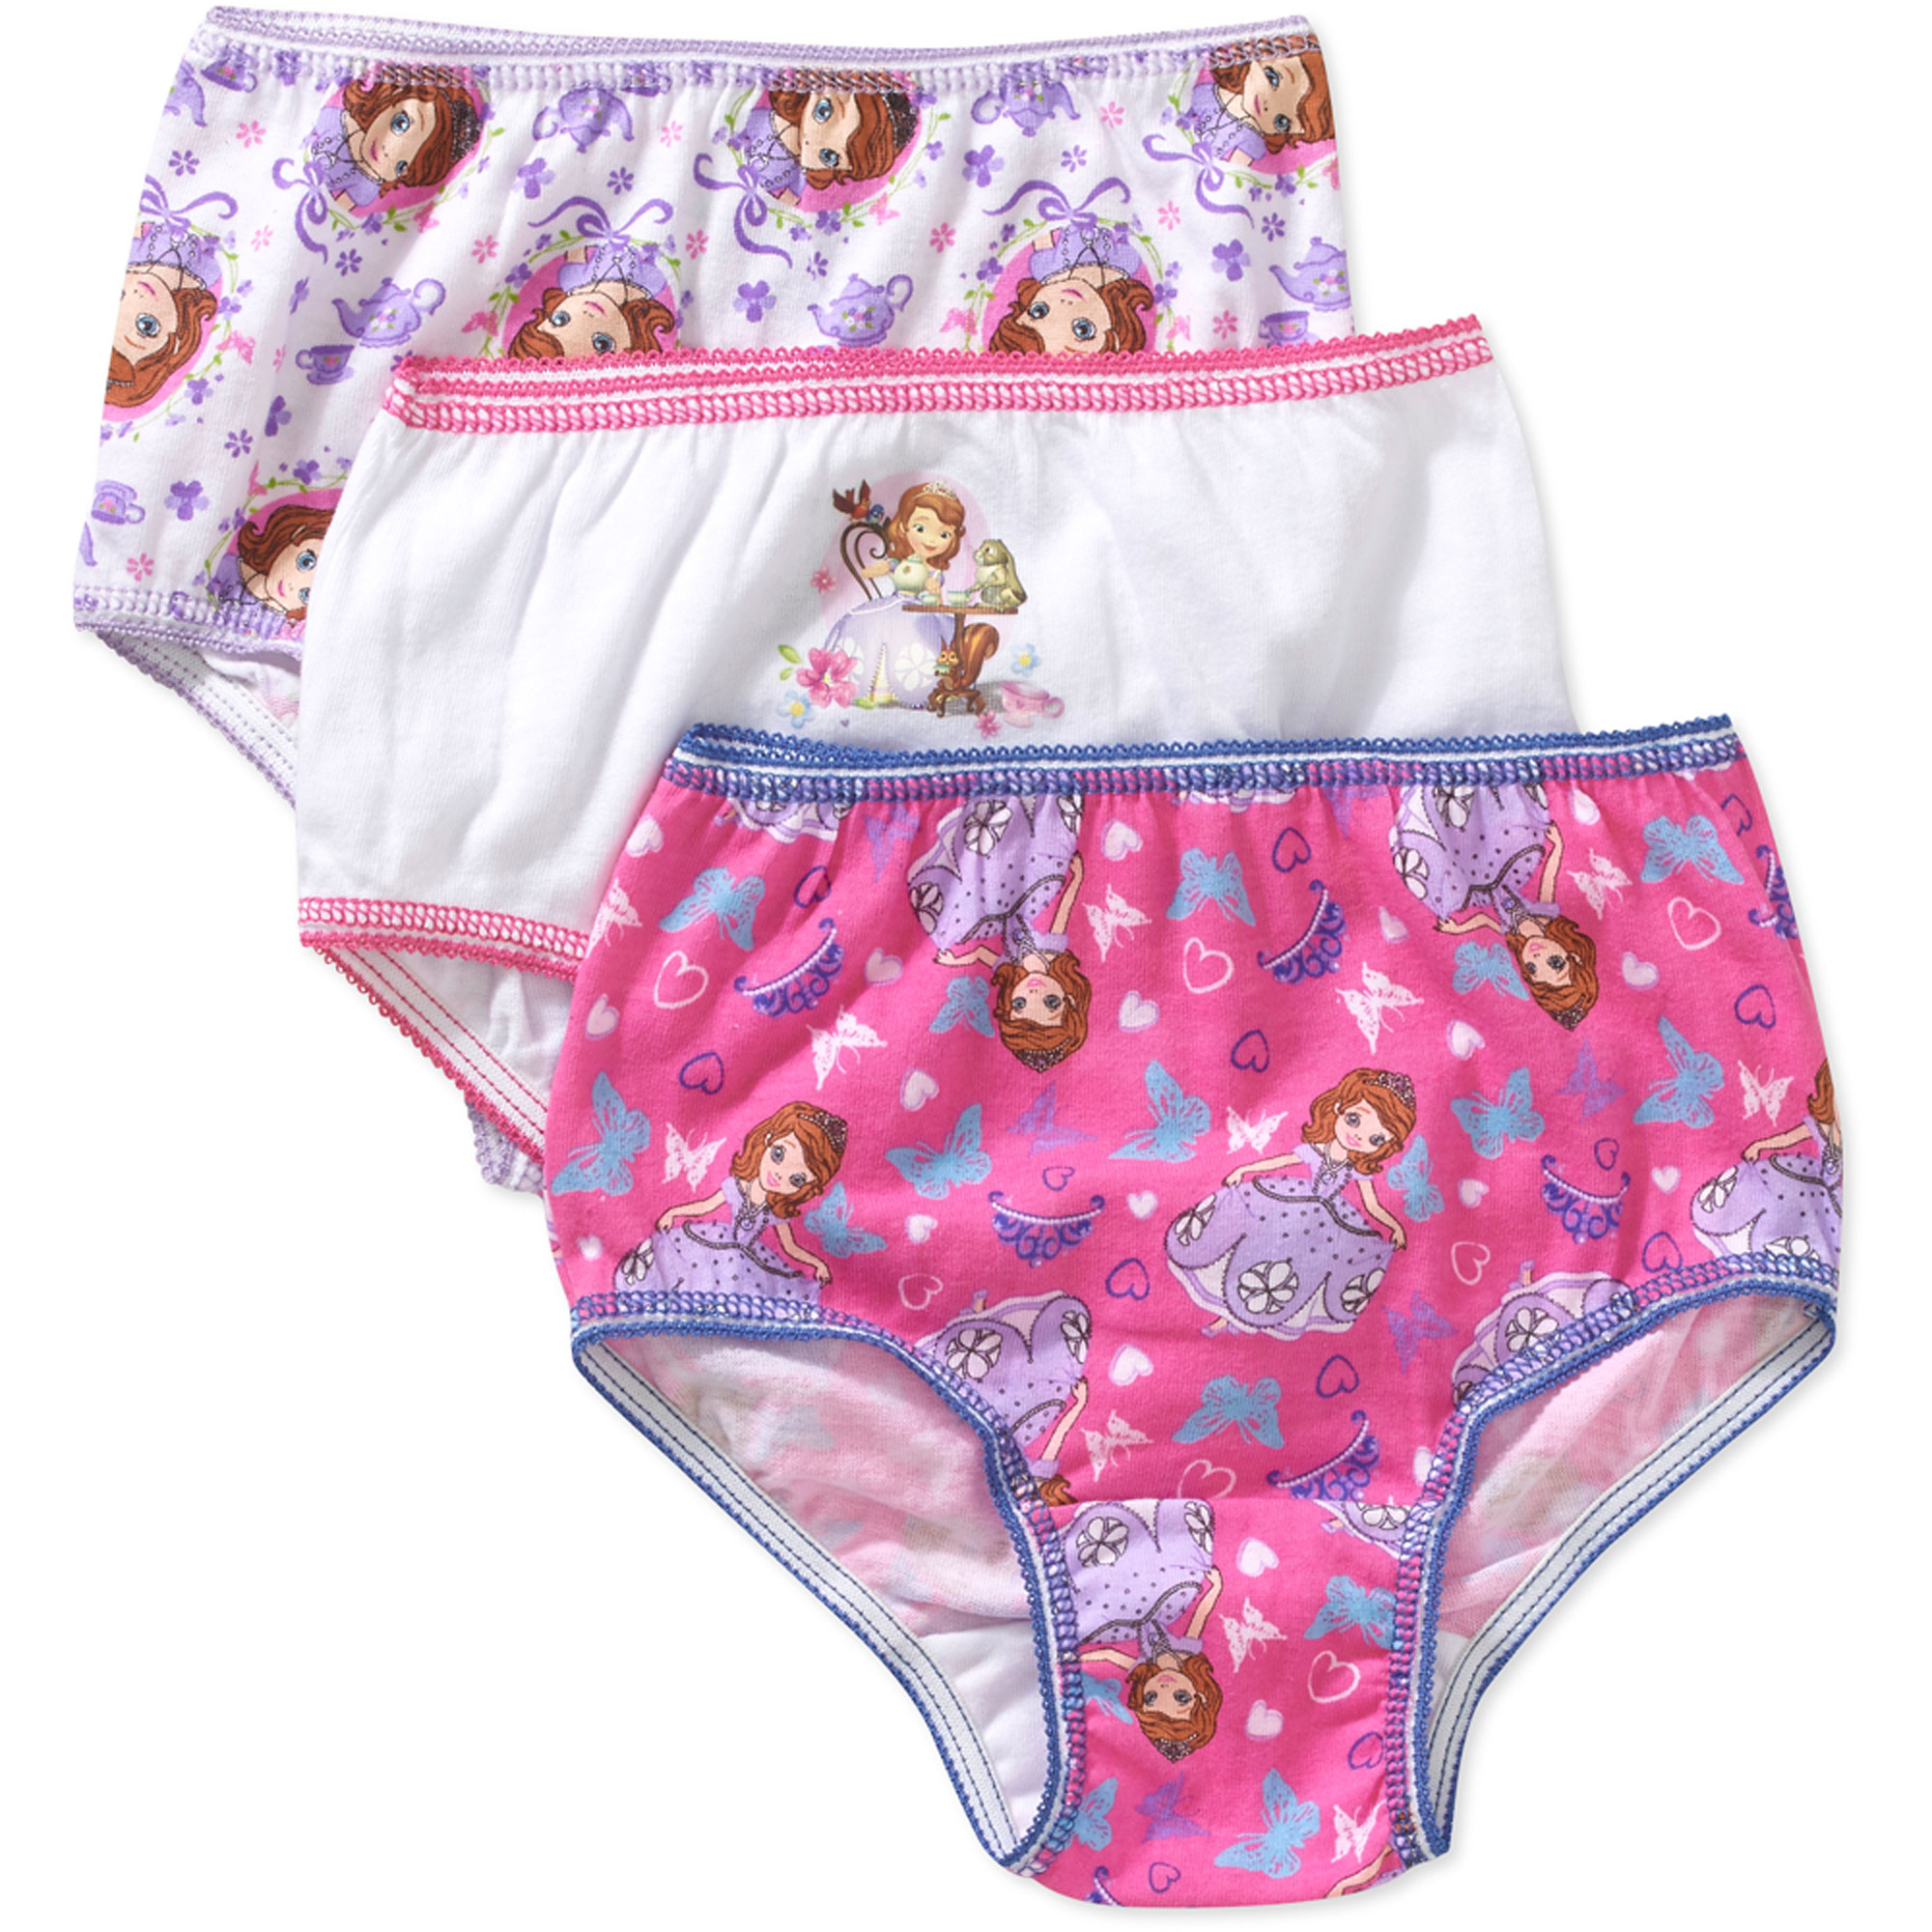 Sofia the First Toddler Girls Underwear, 3 Pack